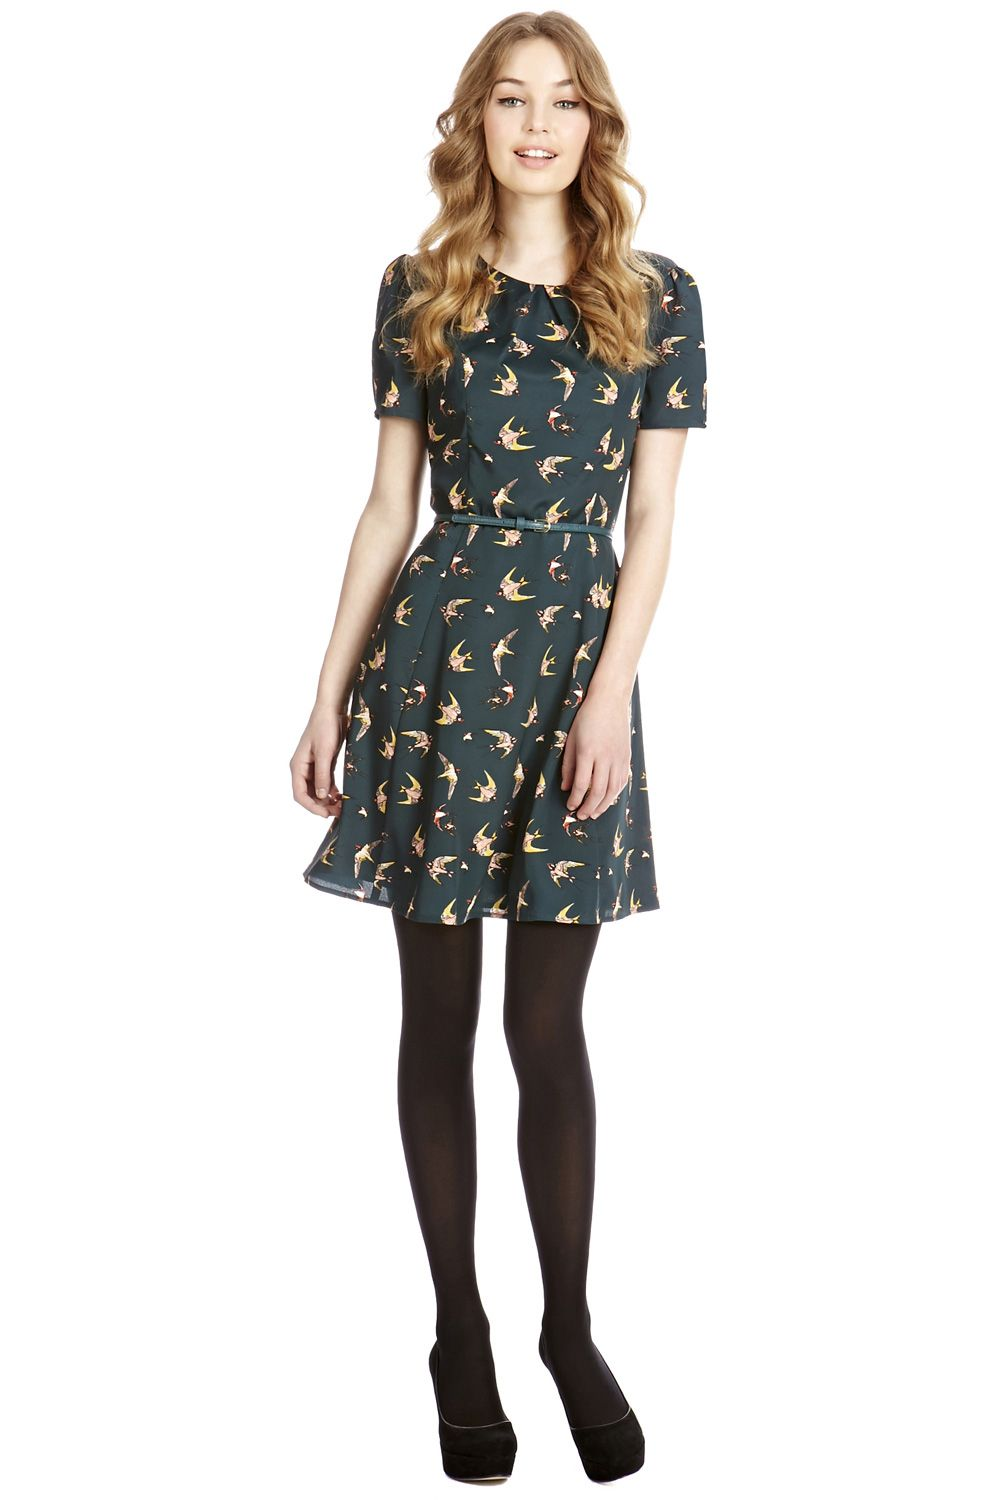 Swallow bird skater dress